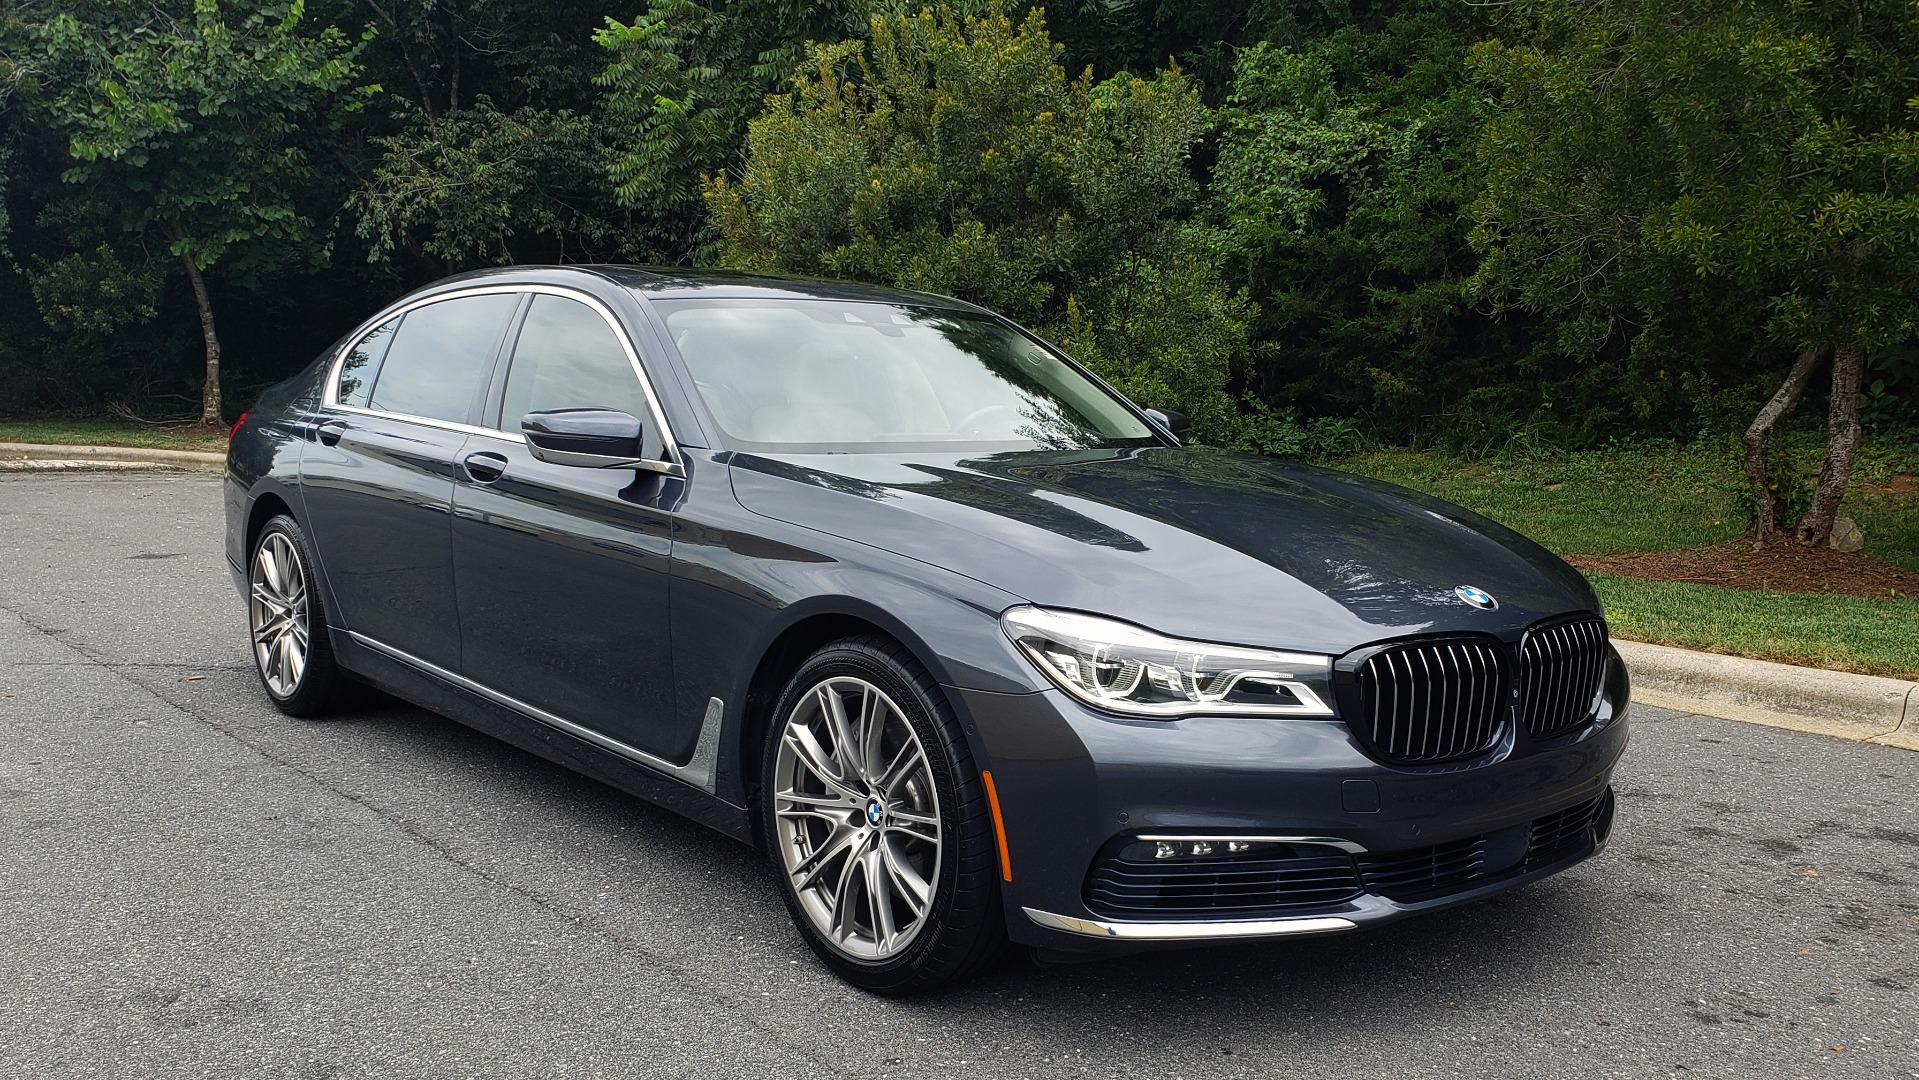 Used 2016 BMW 7 SERIES 750I EXEC PKG / DRVR ASST PLUS / CLD WTHR / SKY LOUNGE ROOF for sale Sold at Formula Imports in Charlotte NC 28227 4